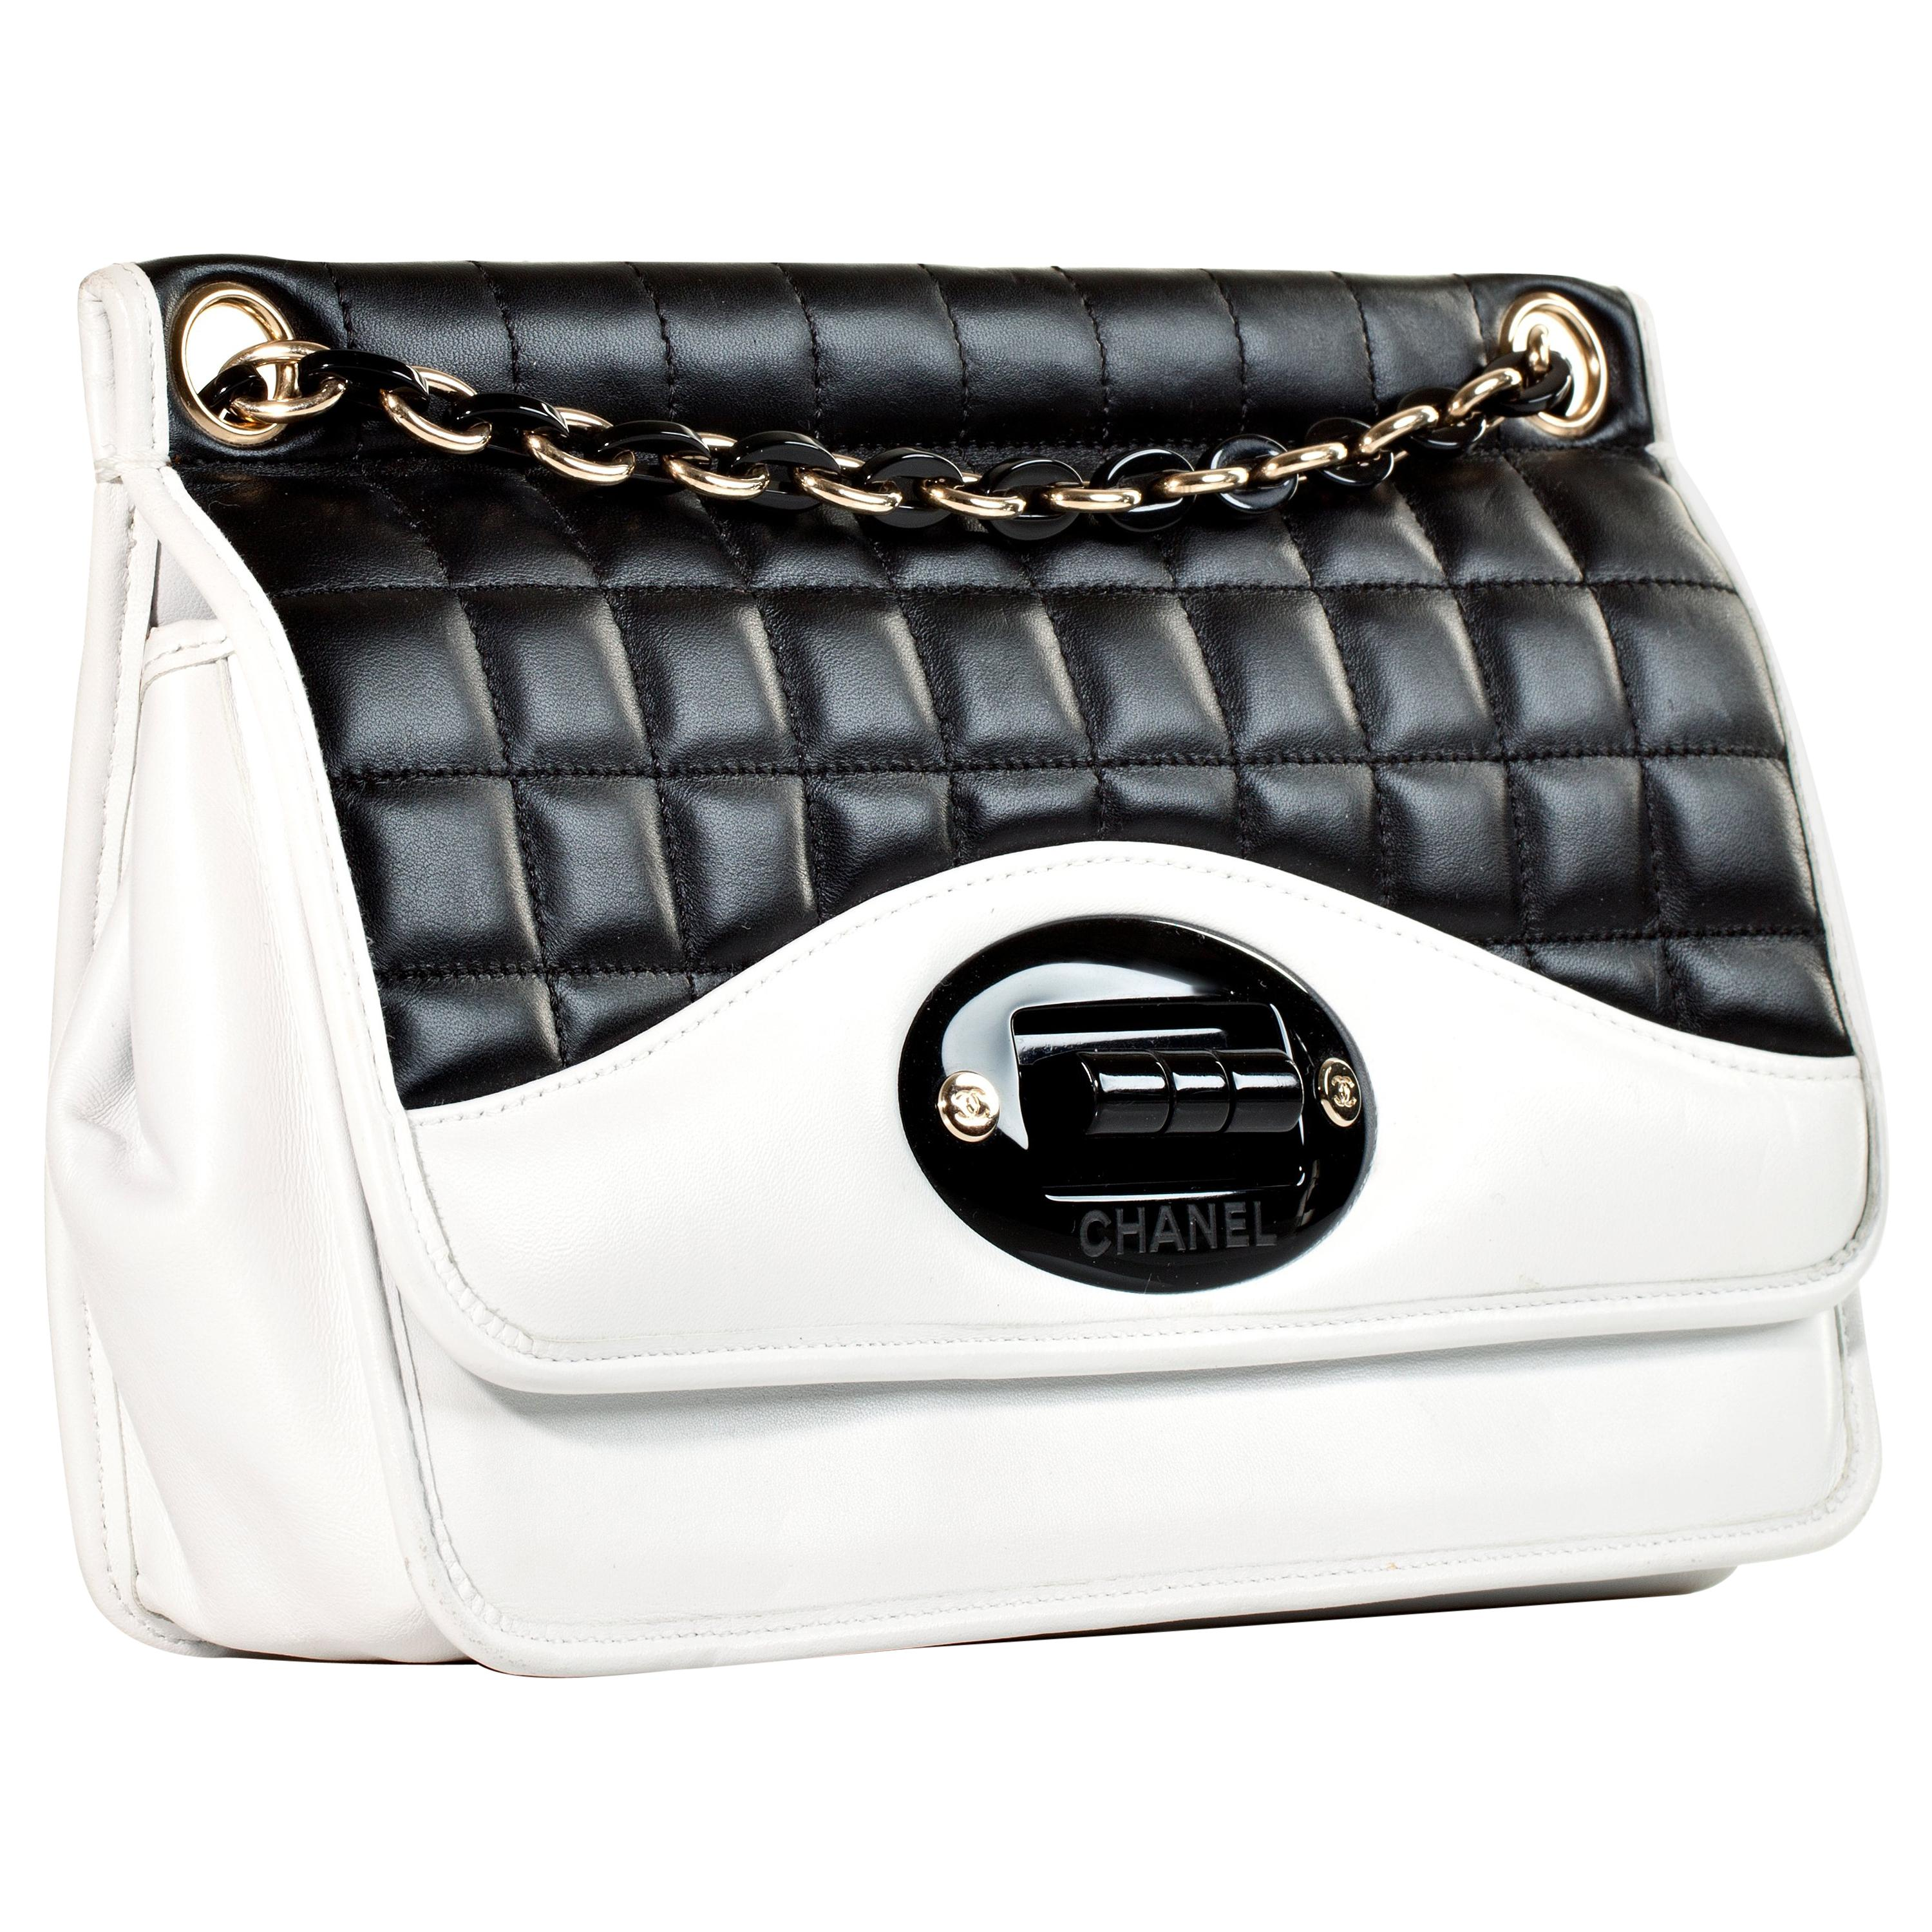 Chanel Two Tone Black and White Flap Bag Rare Limited Edition